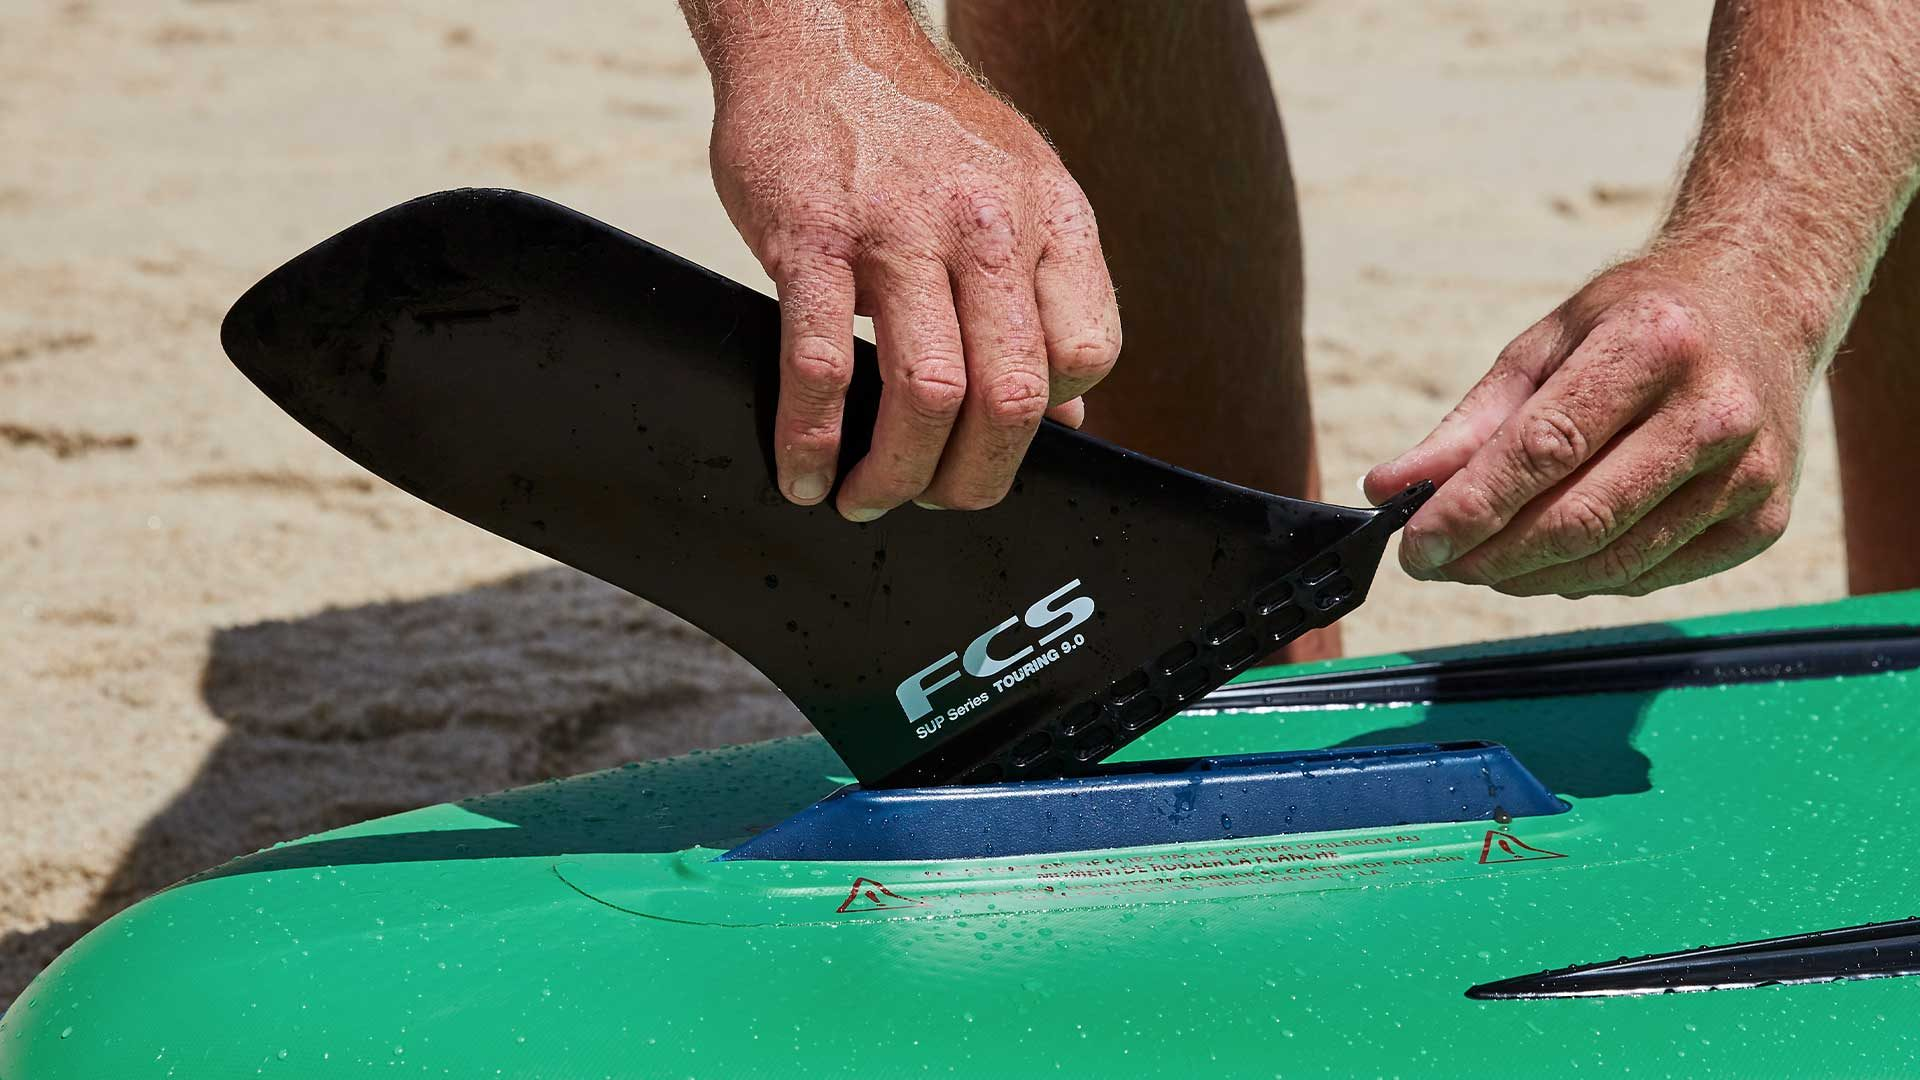 redpaddleco-132-voyager-inflatable-paddle-board-desktop-gallery-fins